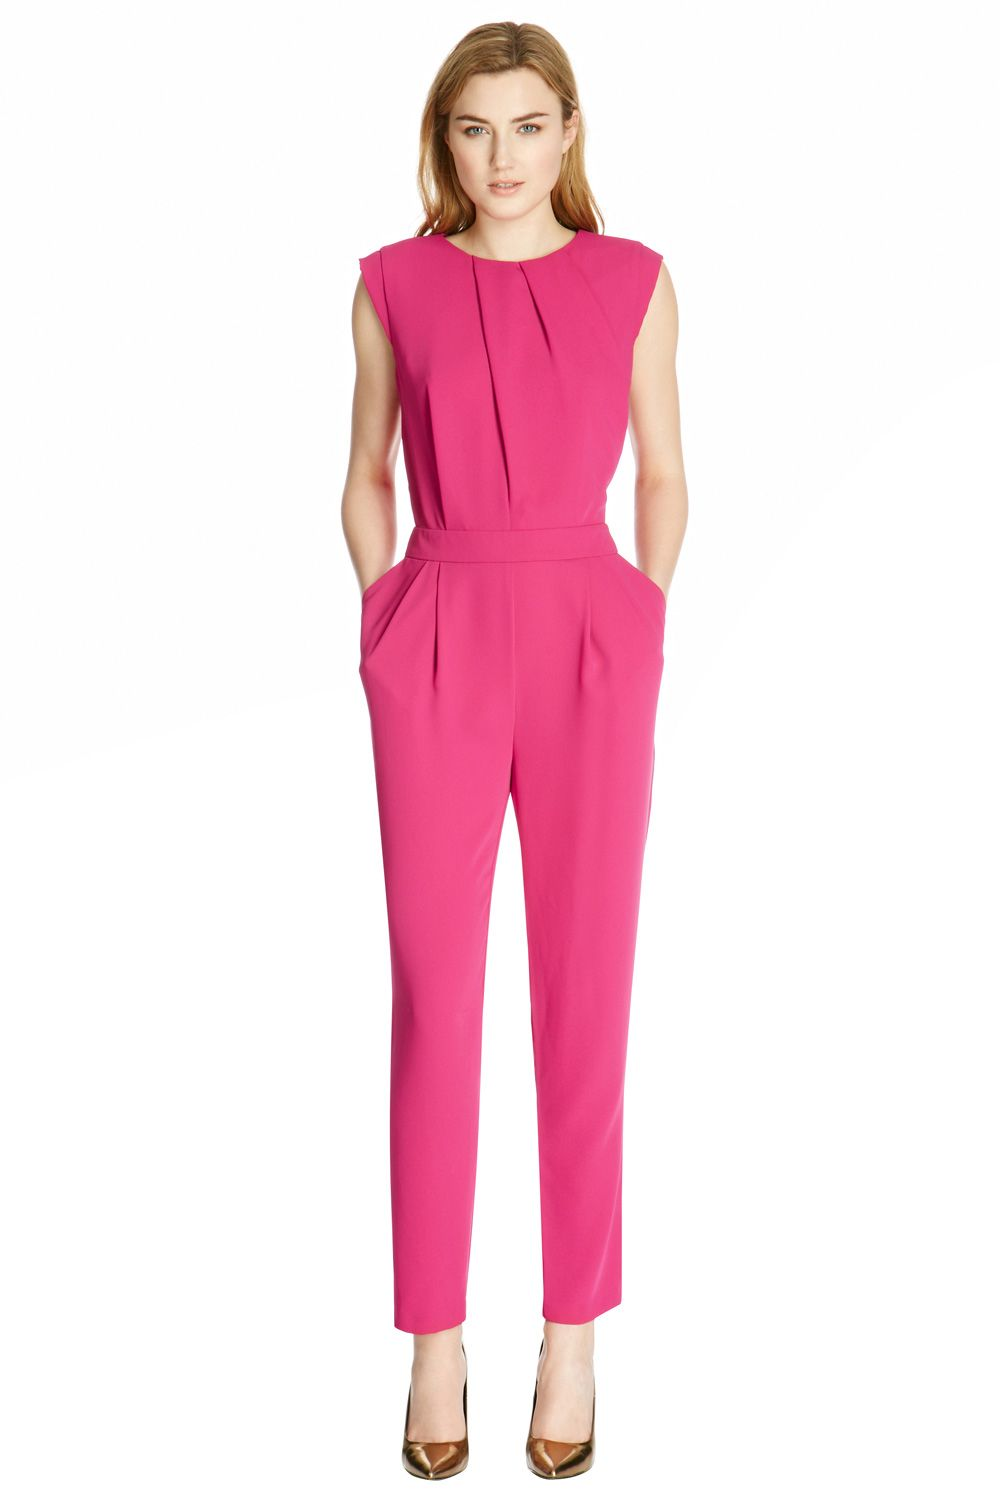 Pink Jumpsuits For Women Breeze Clothing